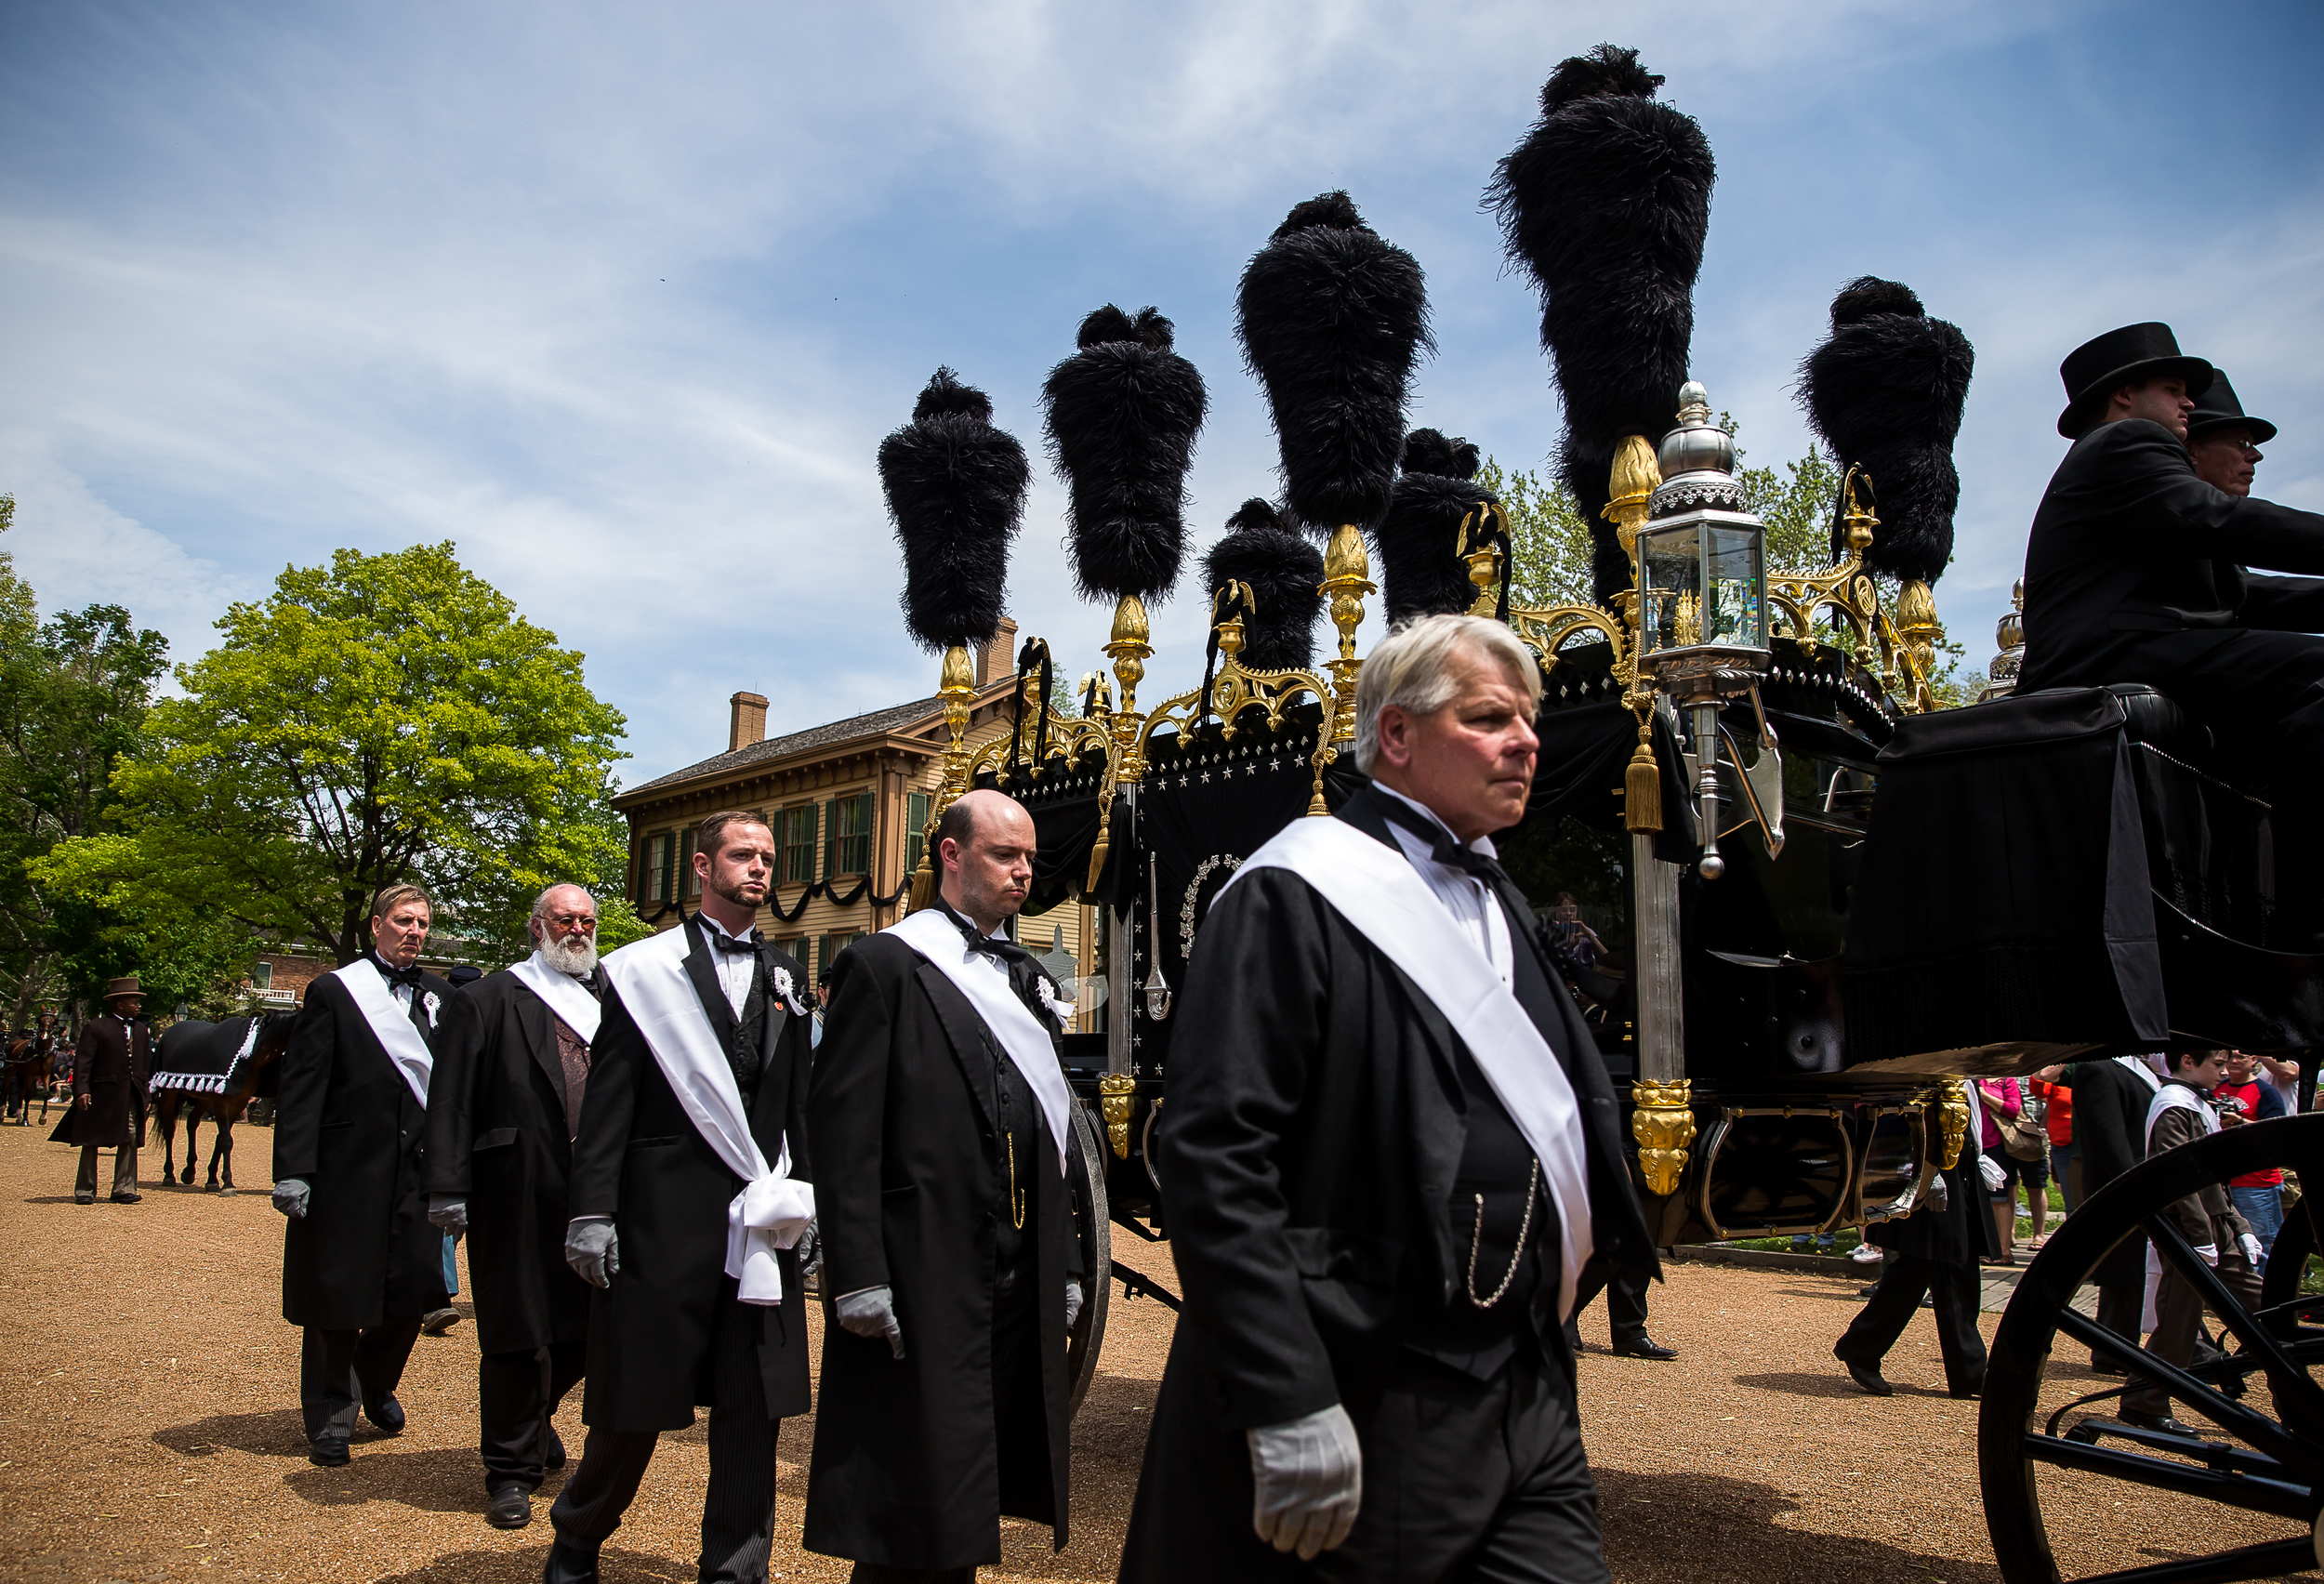 The pallbearers march alongside the ostrich feather topped replica of Lincoln's hearse during the funeral procession for 2015 Lincoln Funeral Re-enactment, Sunday, May 3, 2015, in Springfield, Ill. Justin L. Fowler/The State Journal-Register